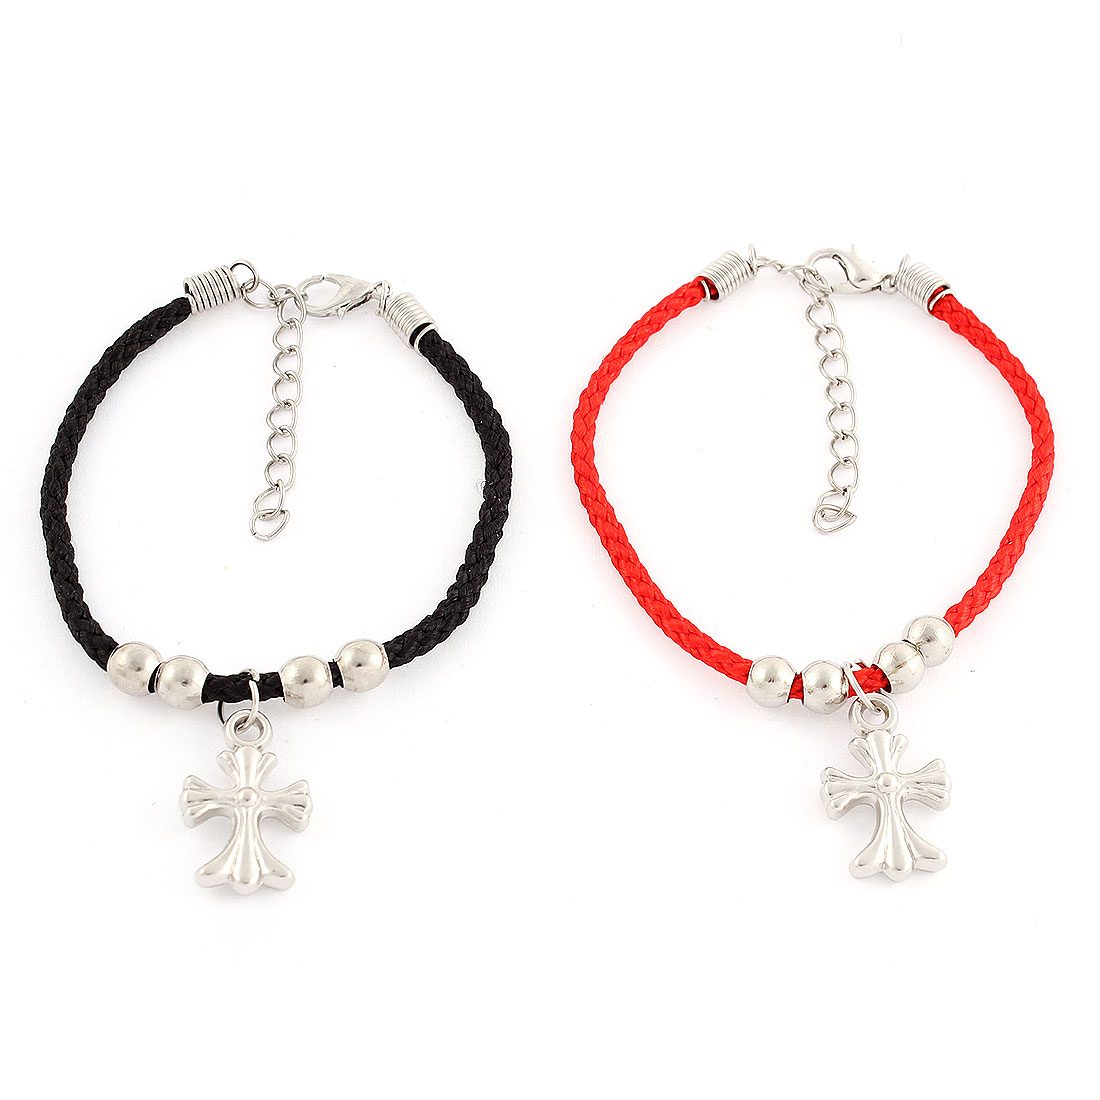 2Pcs Nylon String Buckle Chain Pendant Design Couple Bracelet Bangle